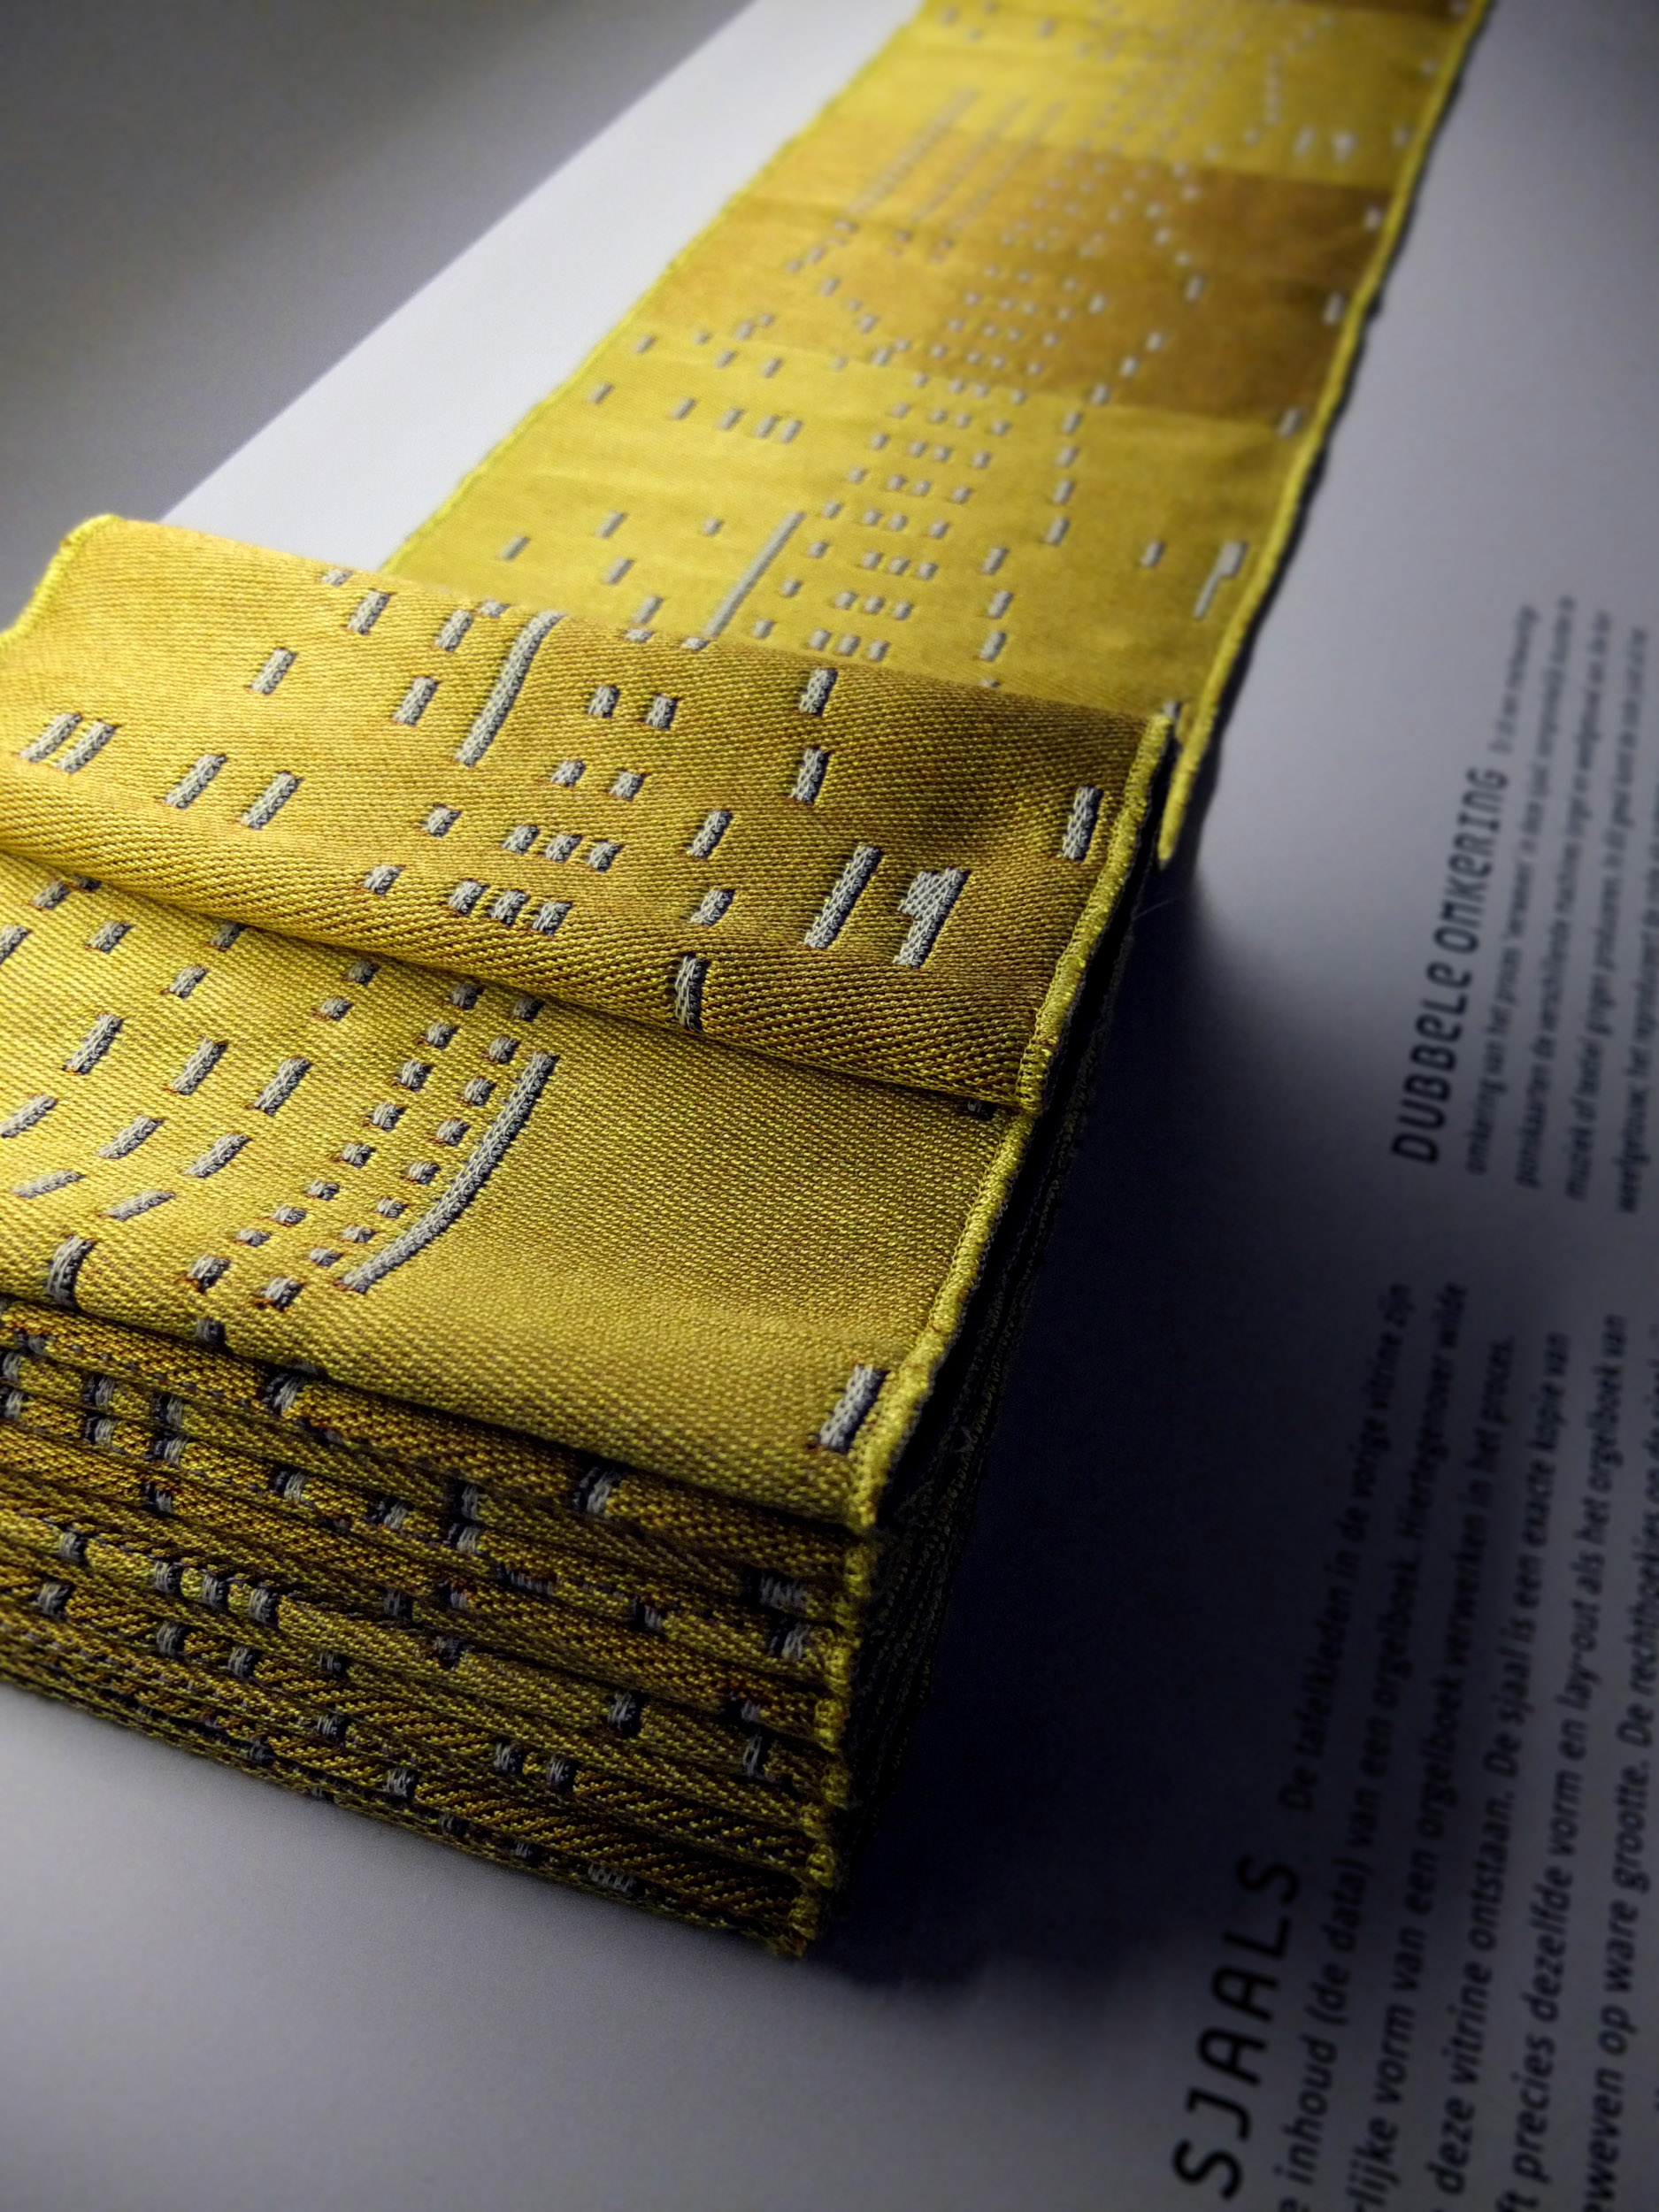 Silk scarves woven in the format of an organ book